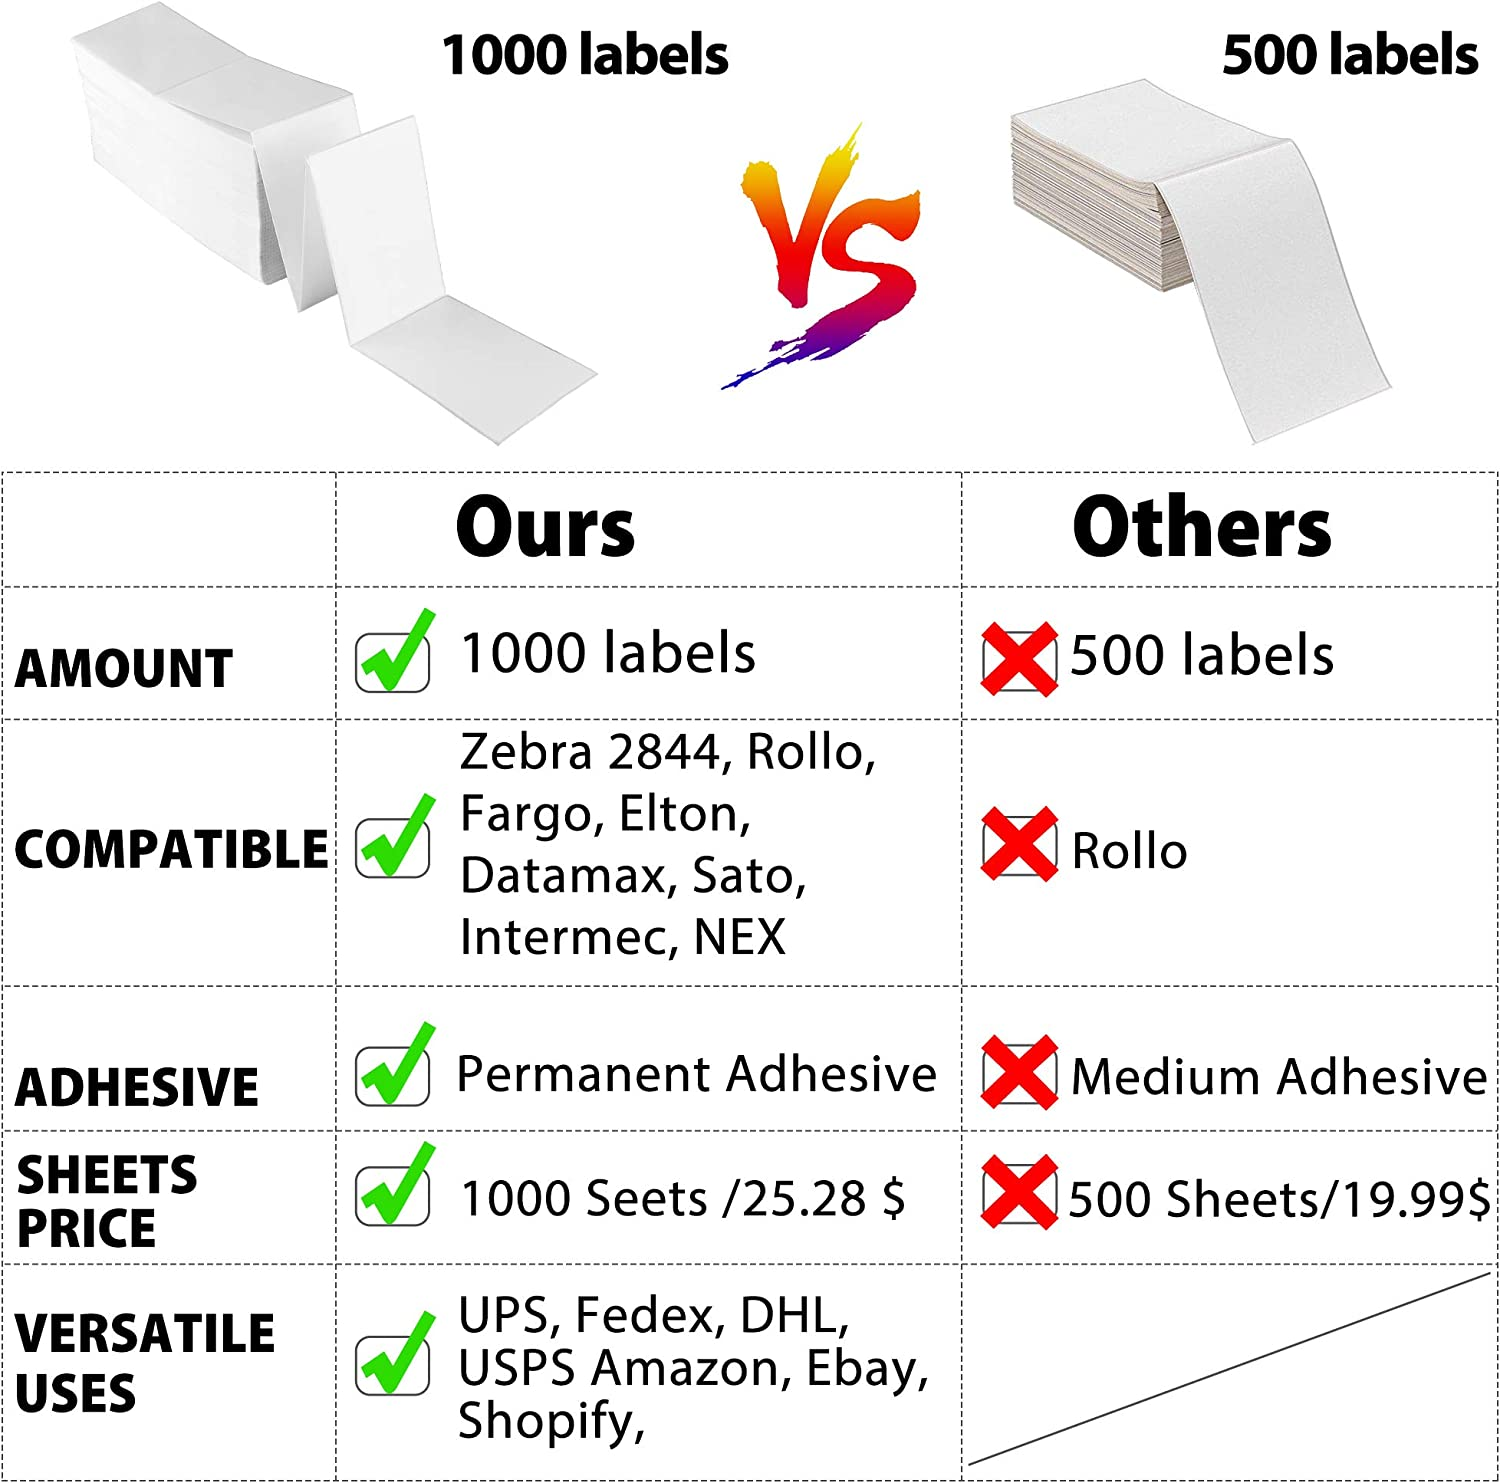 Permanent Adhesive LotFancy Fanfold 4x6 Direct Thermal Labels 2 Stacks Rollo Thermal Printer 4000 Labels Total Perforated White Mailing Shipping Labels Compatible with Zebra